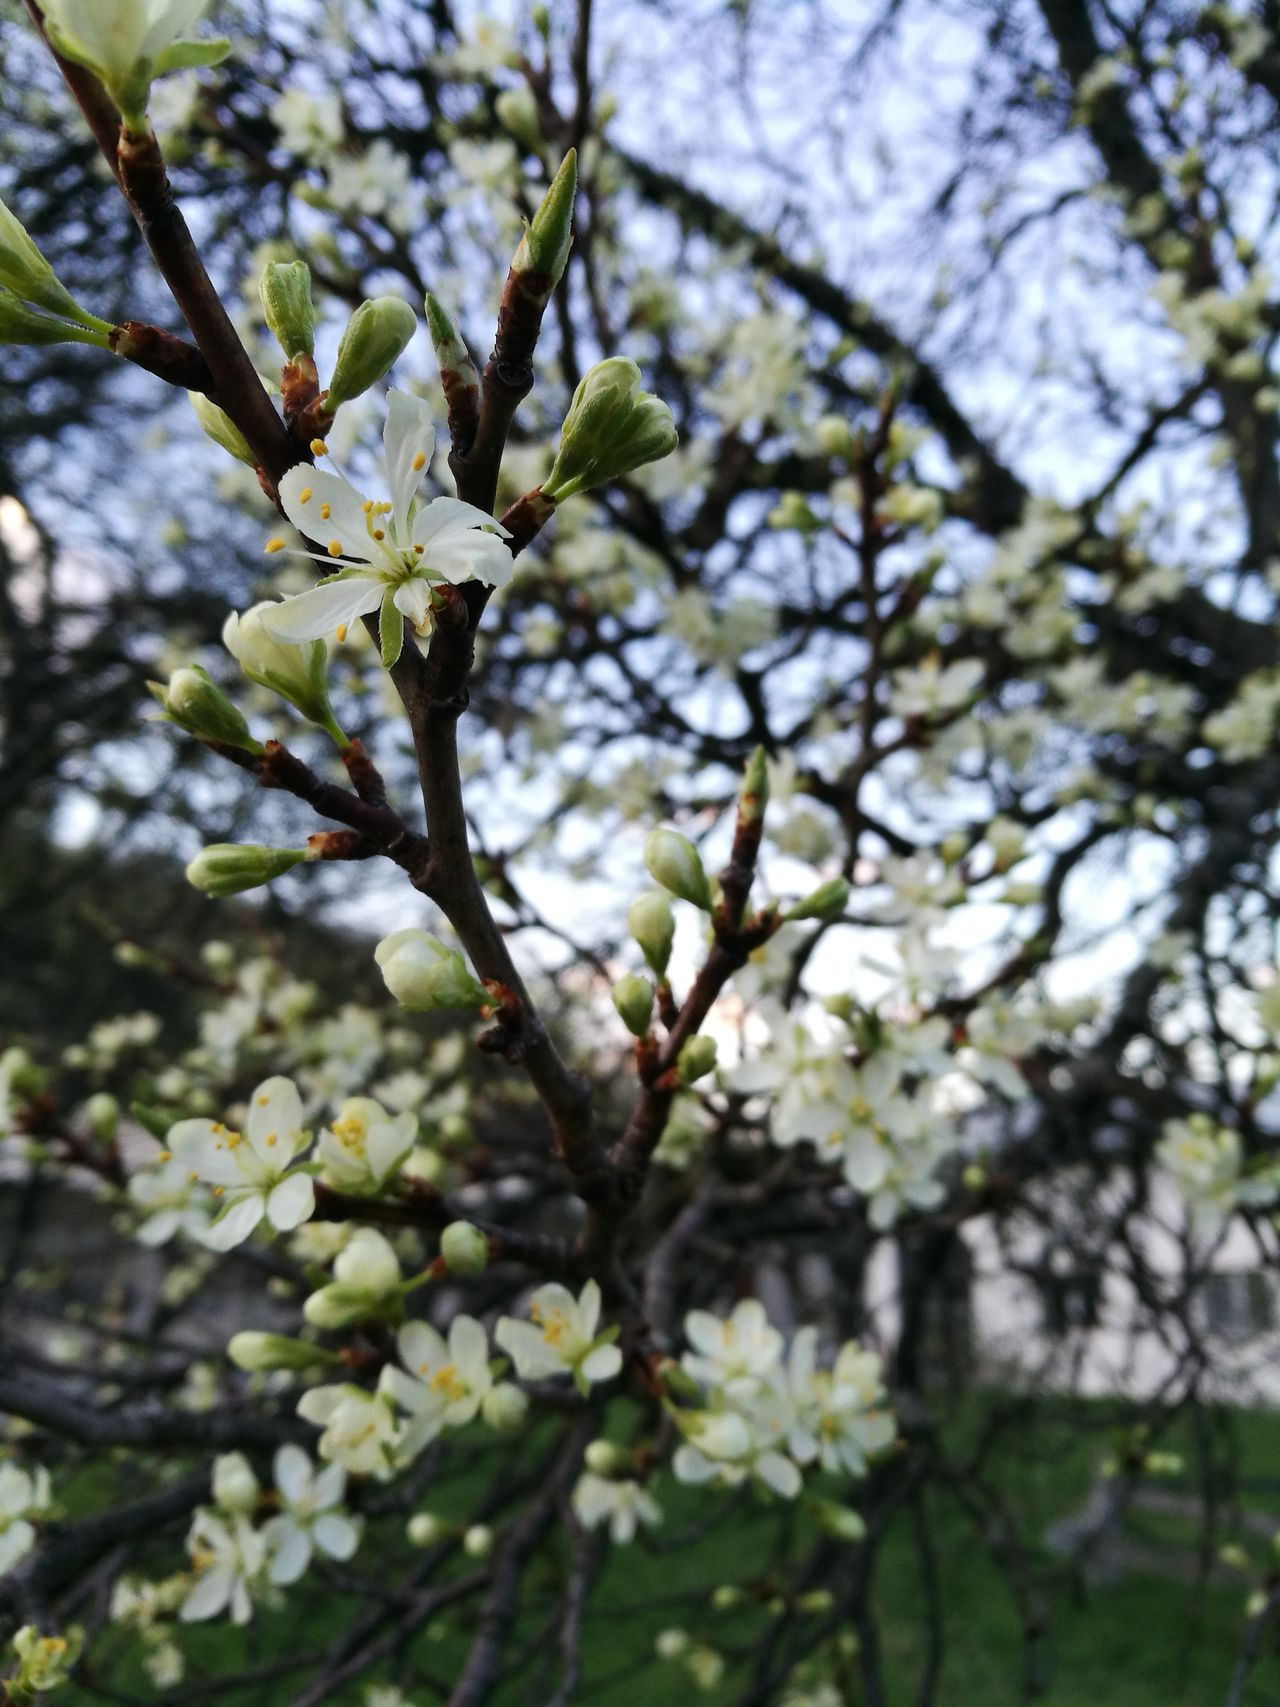 Everything is better when spring comes :) Nature Growth Tree Beauty In Nature Branch Close-up Twig No People Fragility Flower Day Outdoors Blossom Freshness Sky Apple Apple Tree Apple Flower Blossoms  Huawei P9 Leica Leicaphotography Leica Dual Camera HuaweiP9shots Huaweip9photos Leica Lens